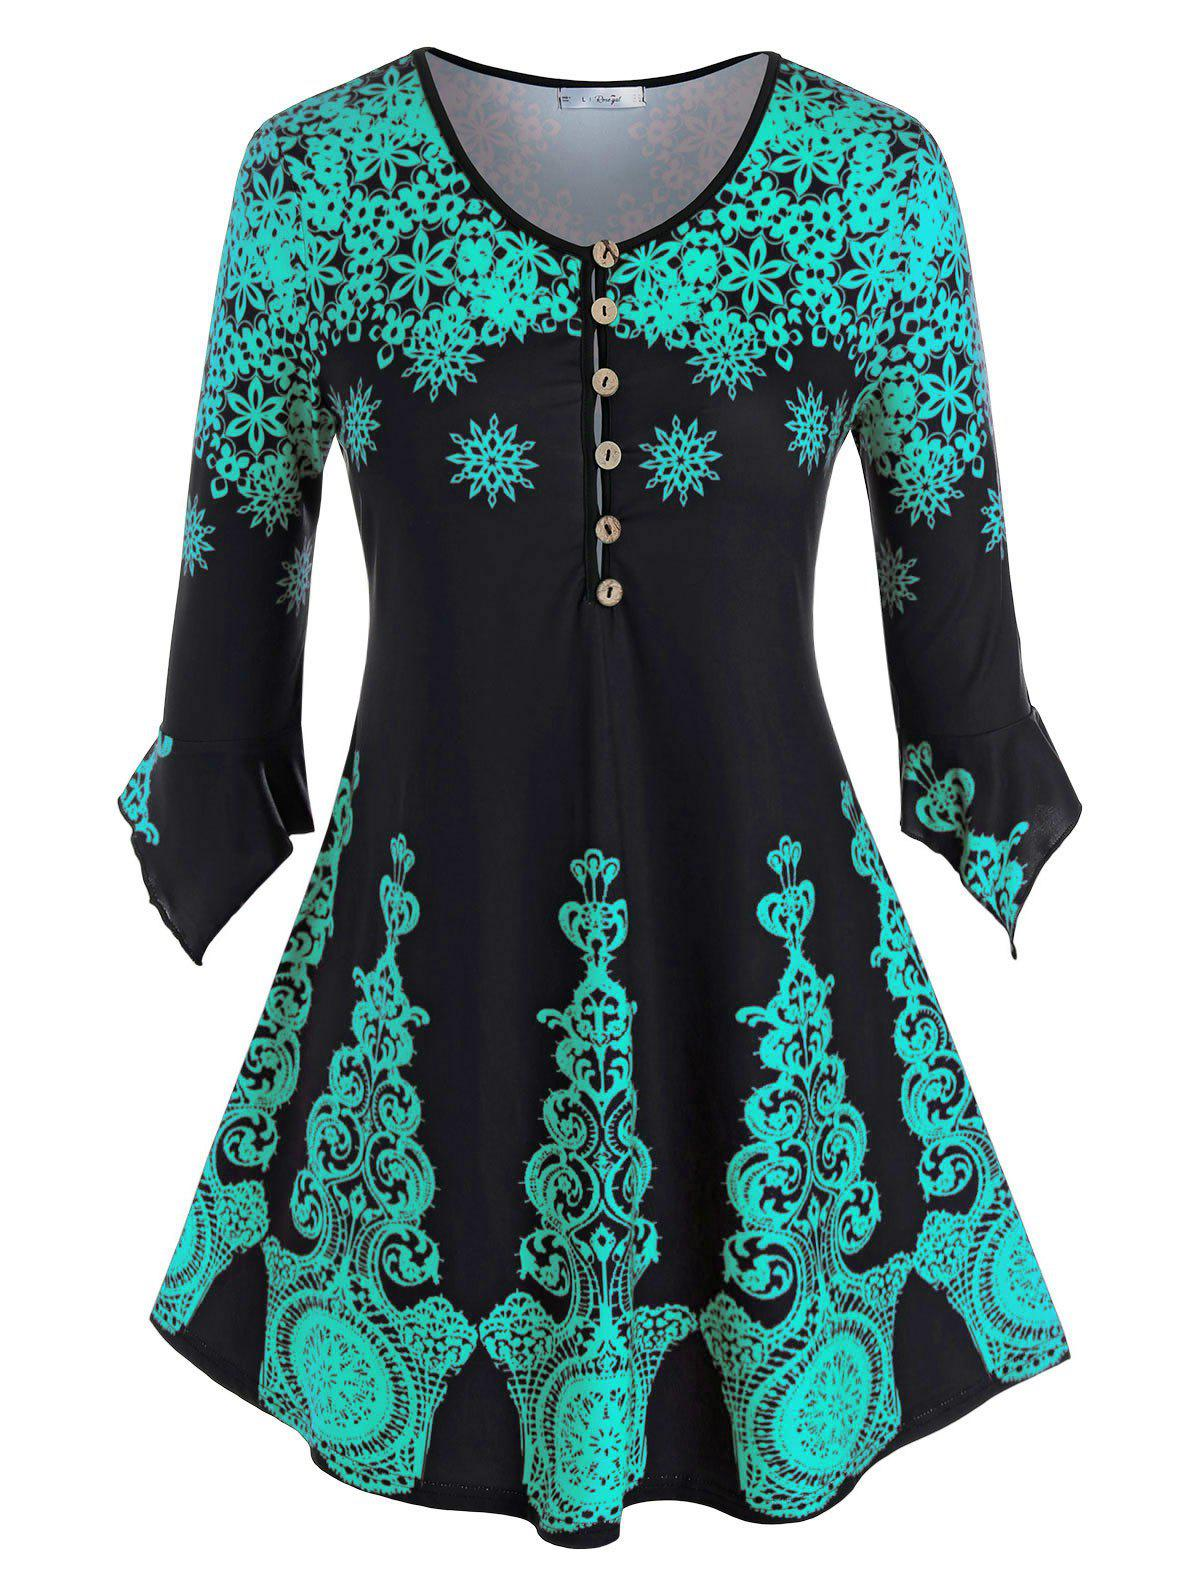 Plus Size Snowflake Print Buttoned Ruffle Cuff Top - DEEP GREEN 5X